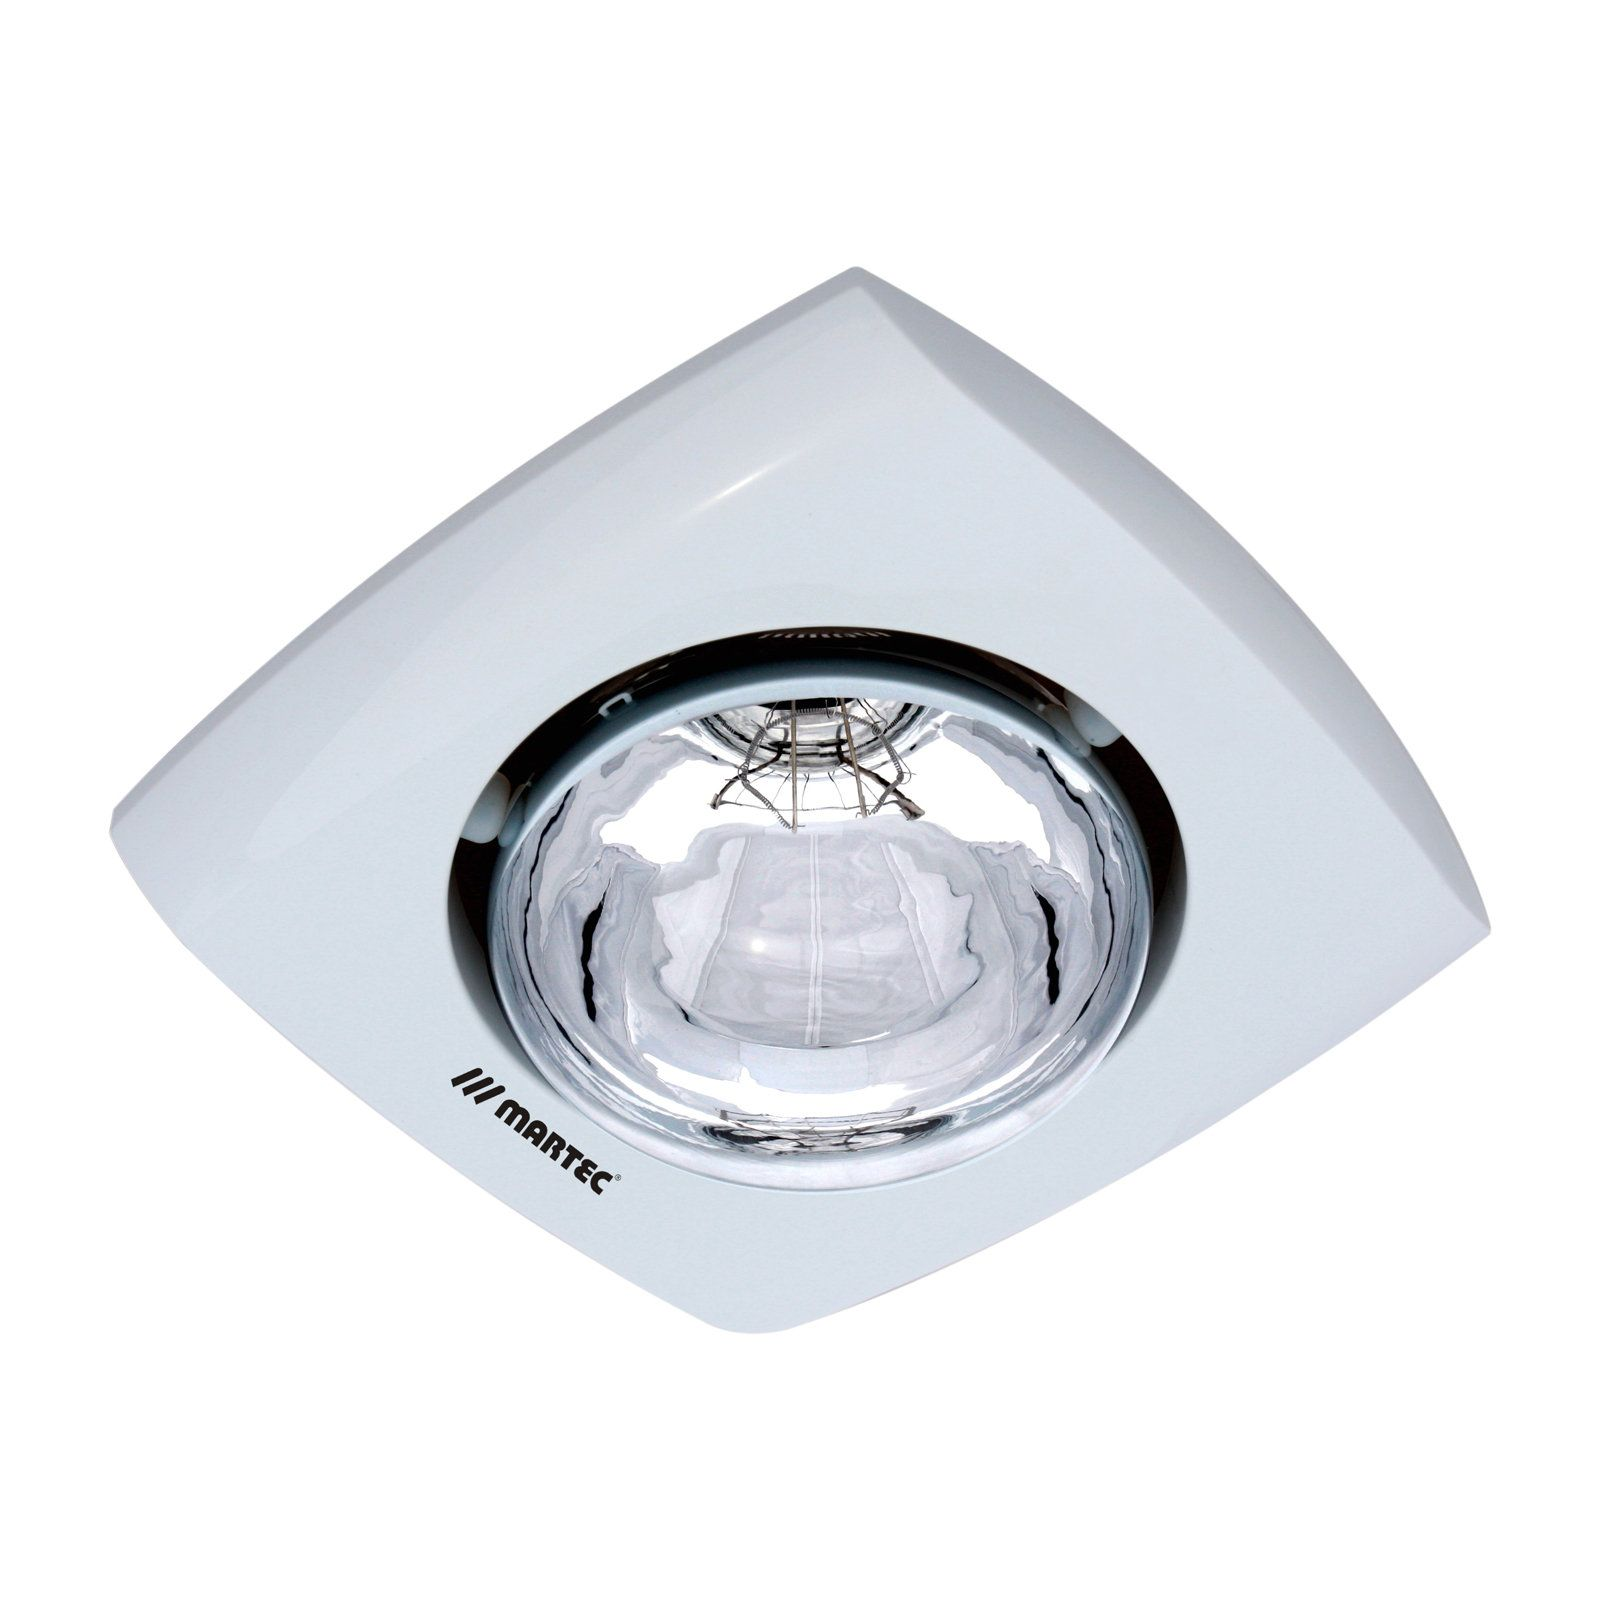 Superieur Heat Lamp Bathroom Lighting And Ceiling Fans